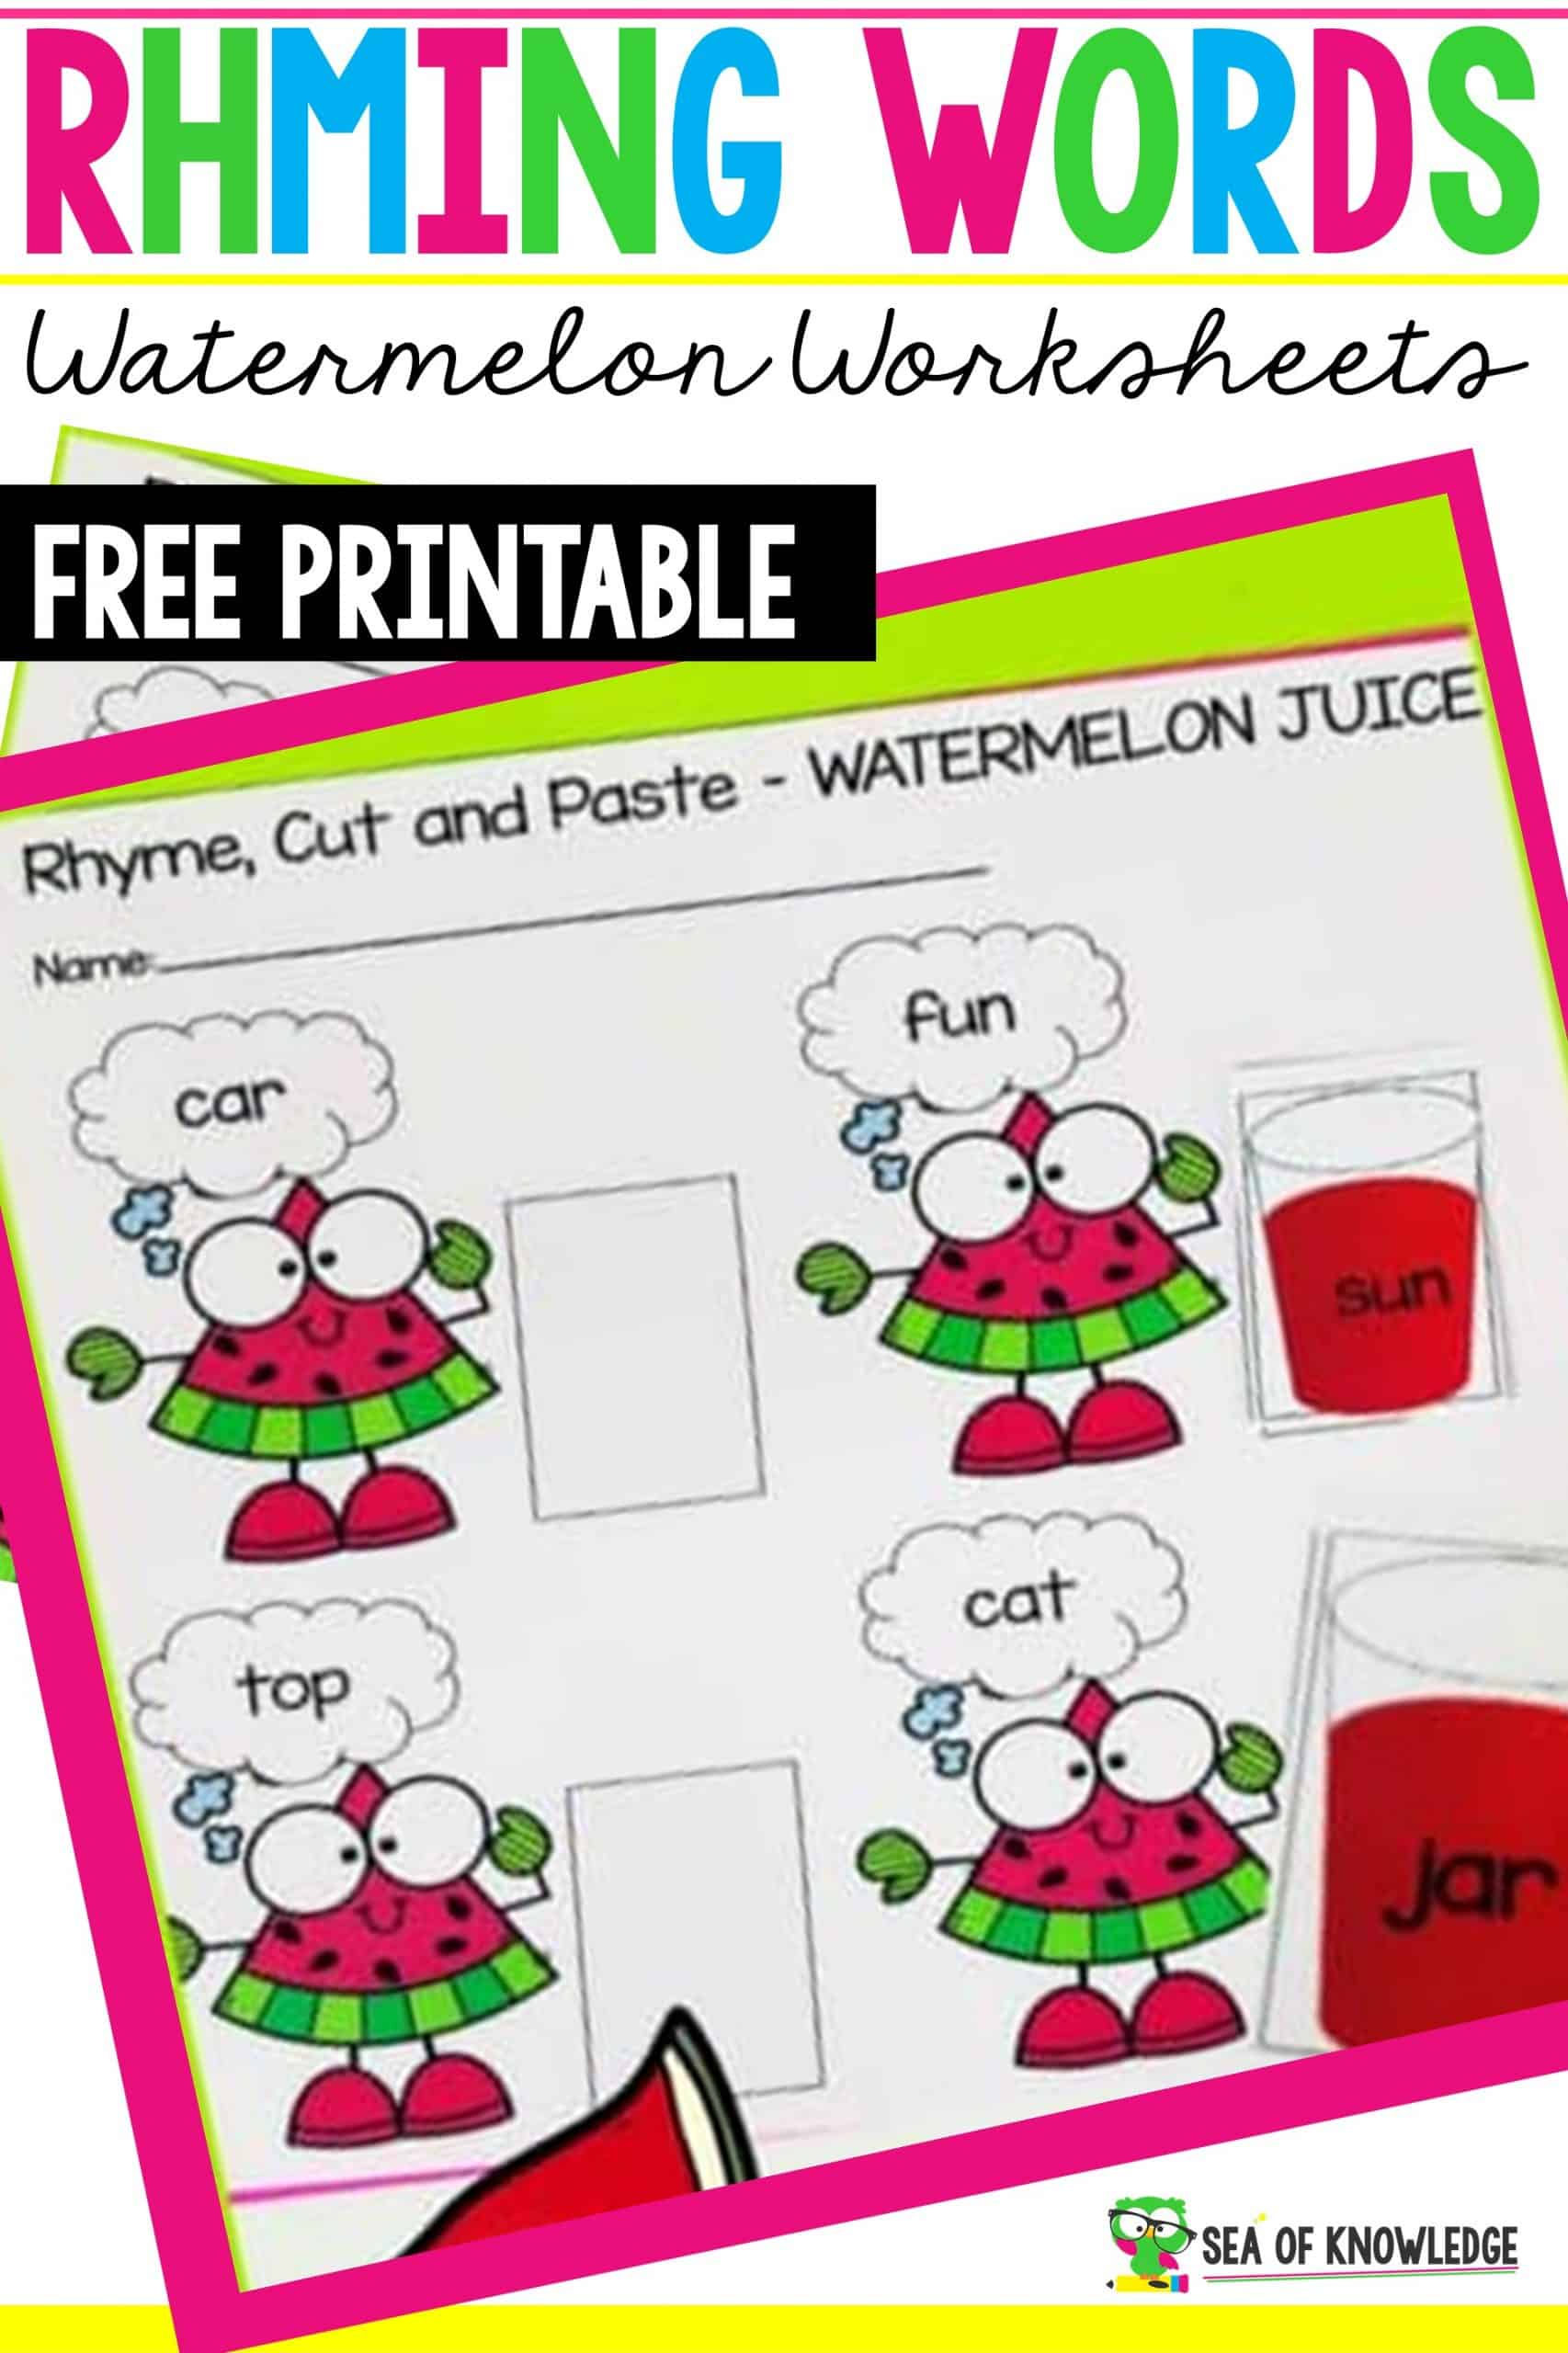 Rhyming Words Worksheets Watermelon Juice